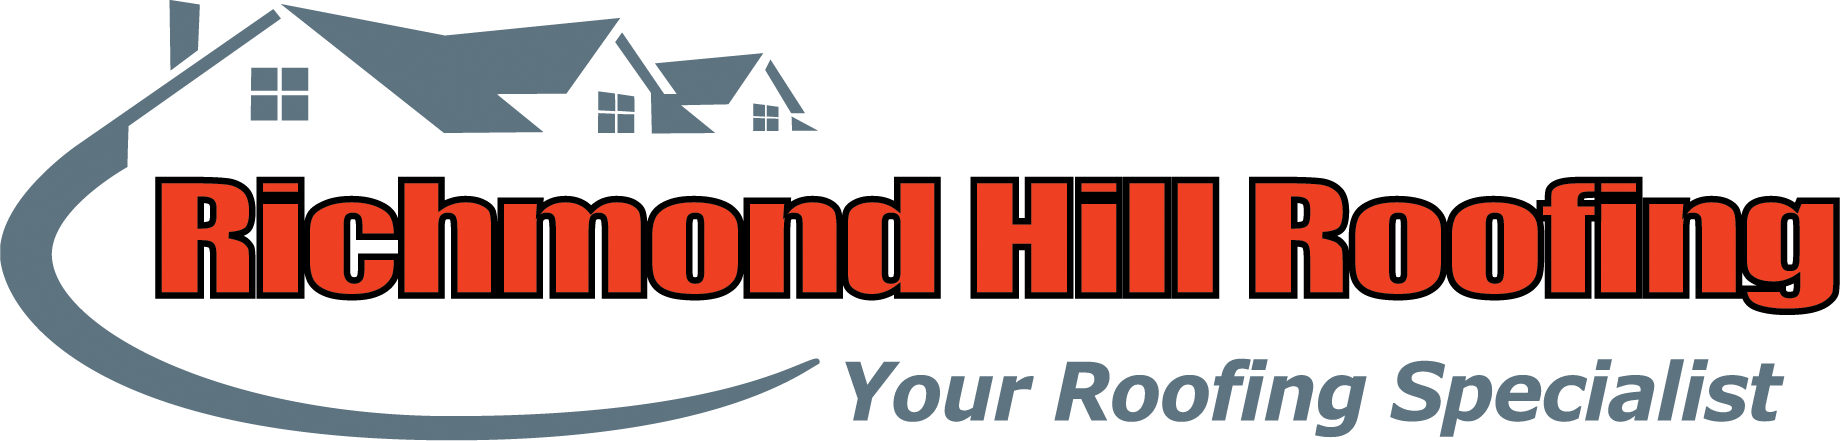 Richmond Hill Roofing